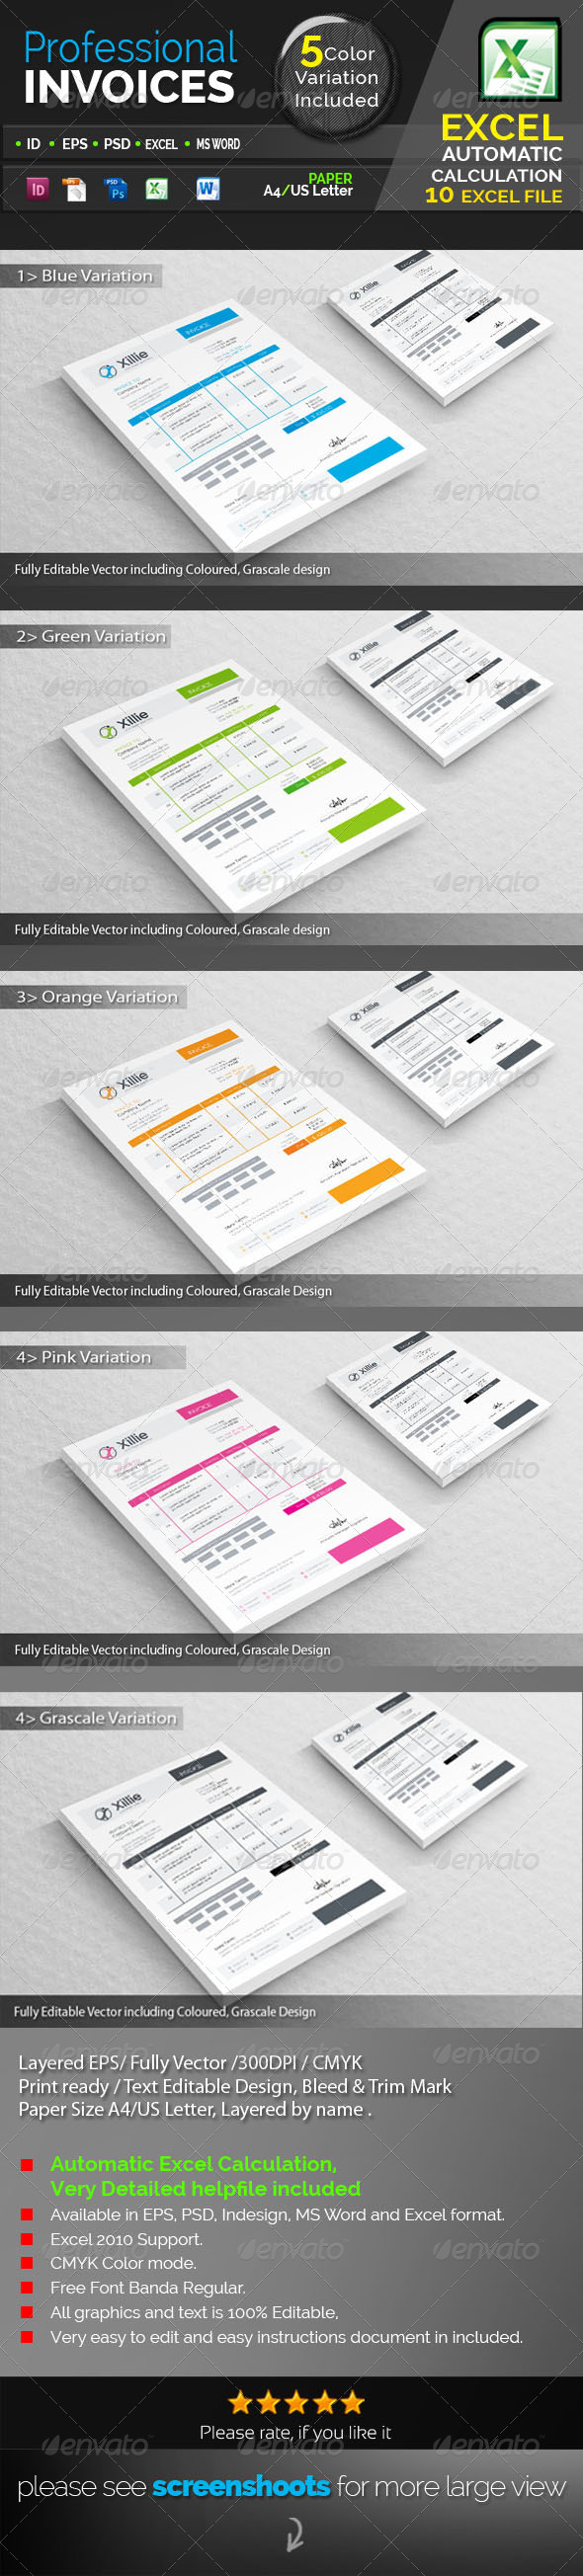 GraphicRiver Xillie Corporate Invoices 7567132